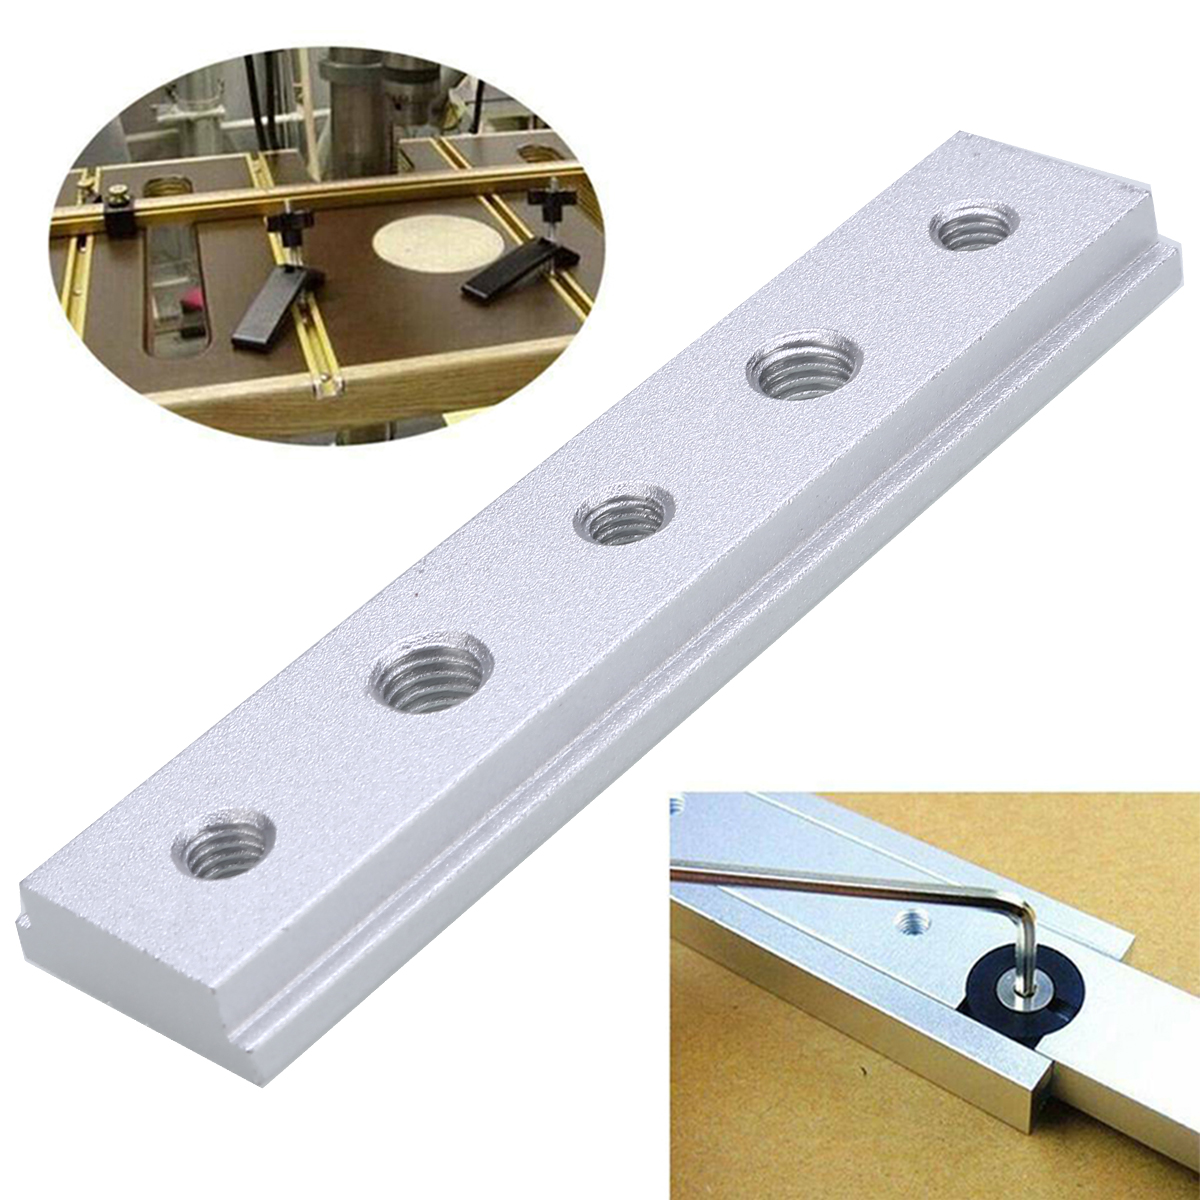 1 Piece 100mm Aluminium Alloy T-Slot T-Track Miter Track Jig Fixture For Router Table Bandsaws Woodworking Tool